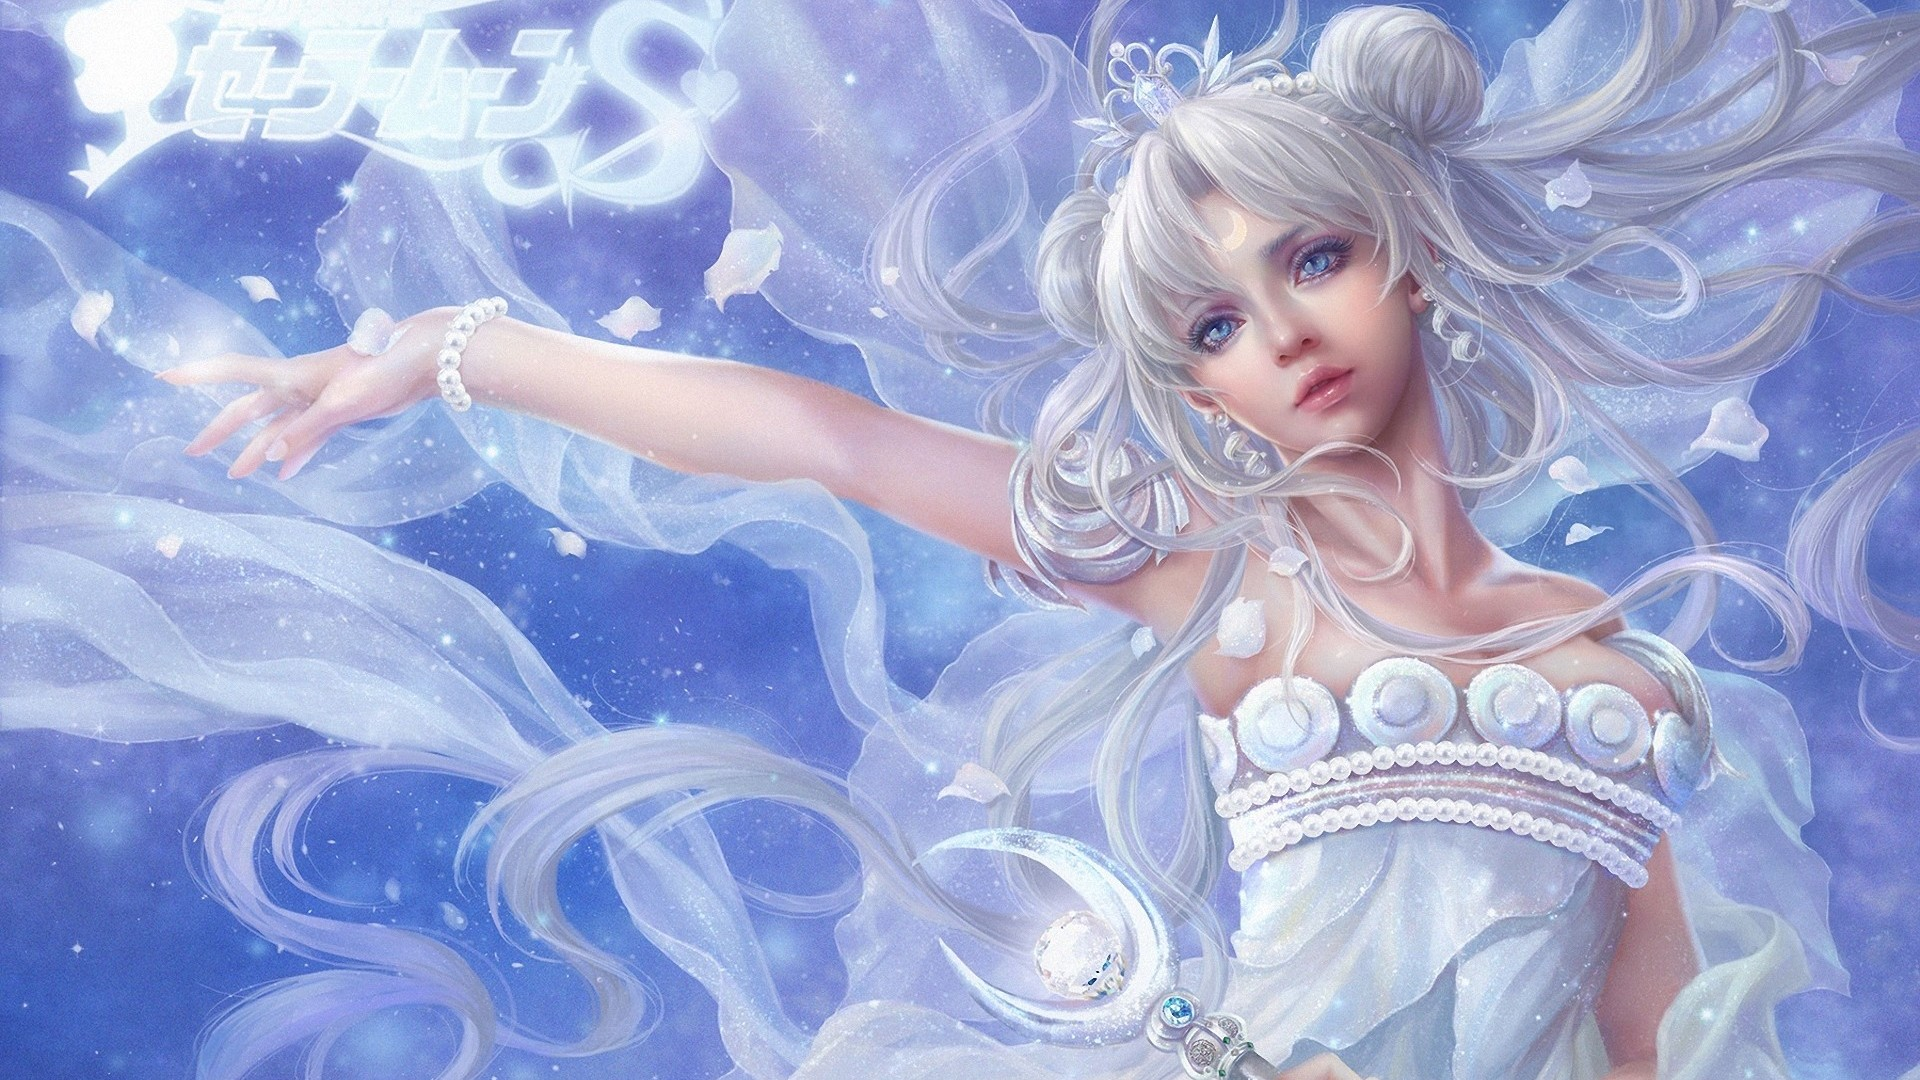 Sailor Moon Wallpapers   Wallpaper High Definition High Quality 1920x1080